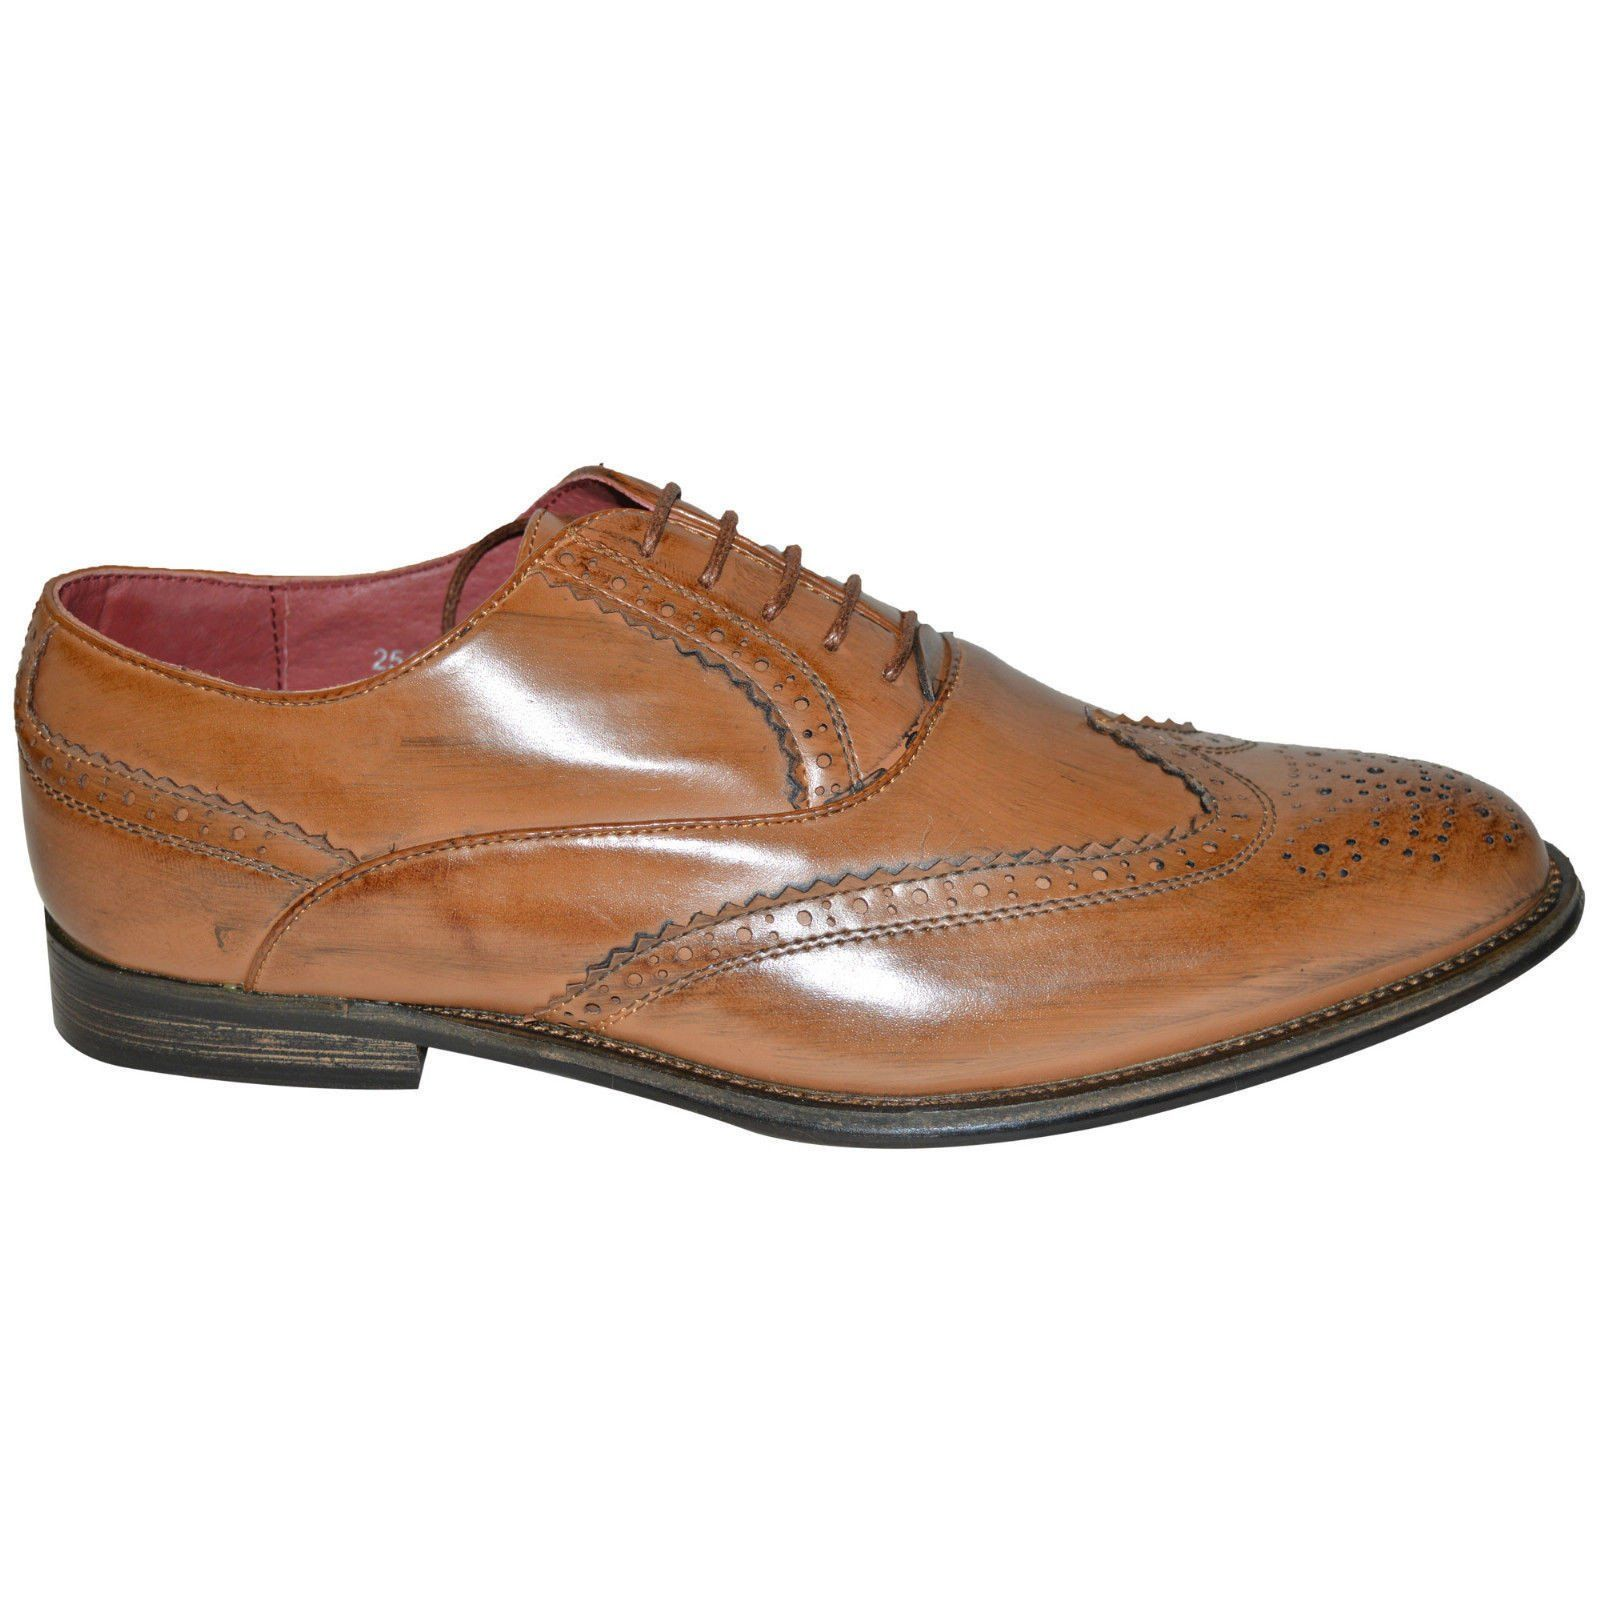 Mens 100% Leather Lined 2Tone Brogues Wedding Formal Shoes